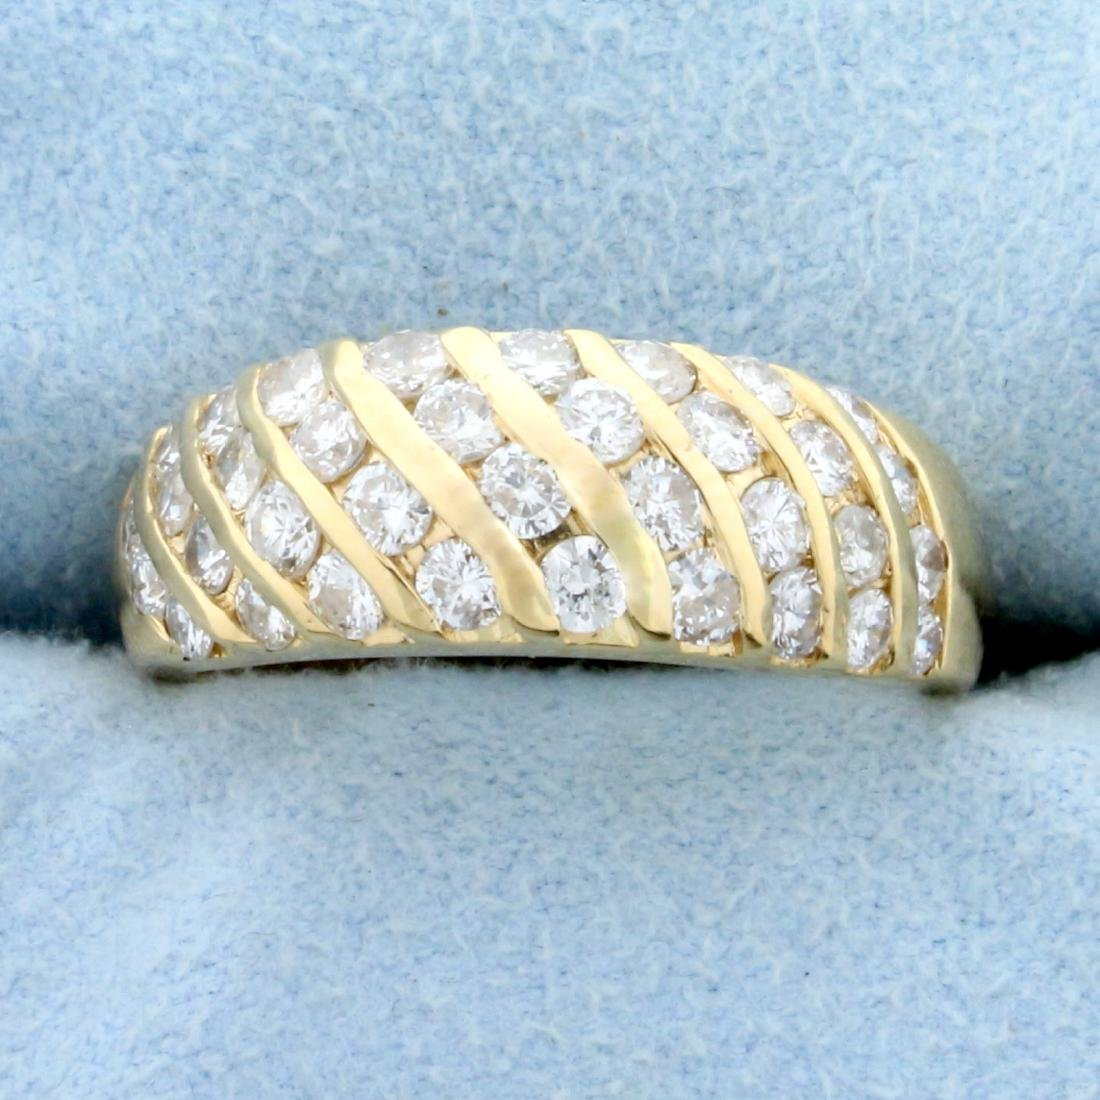 1.5ct TW Diamond Wedding or Anniversary Band Ring in